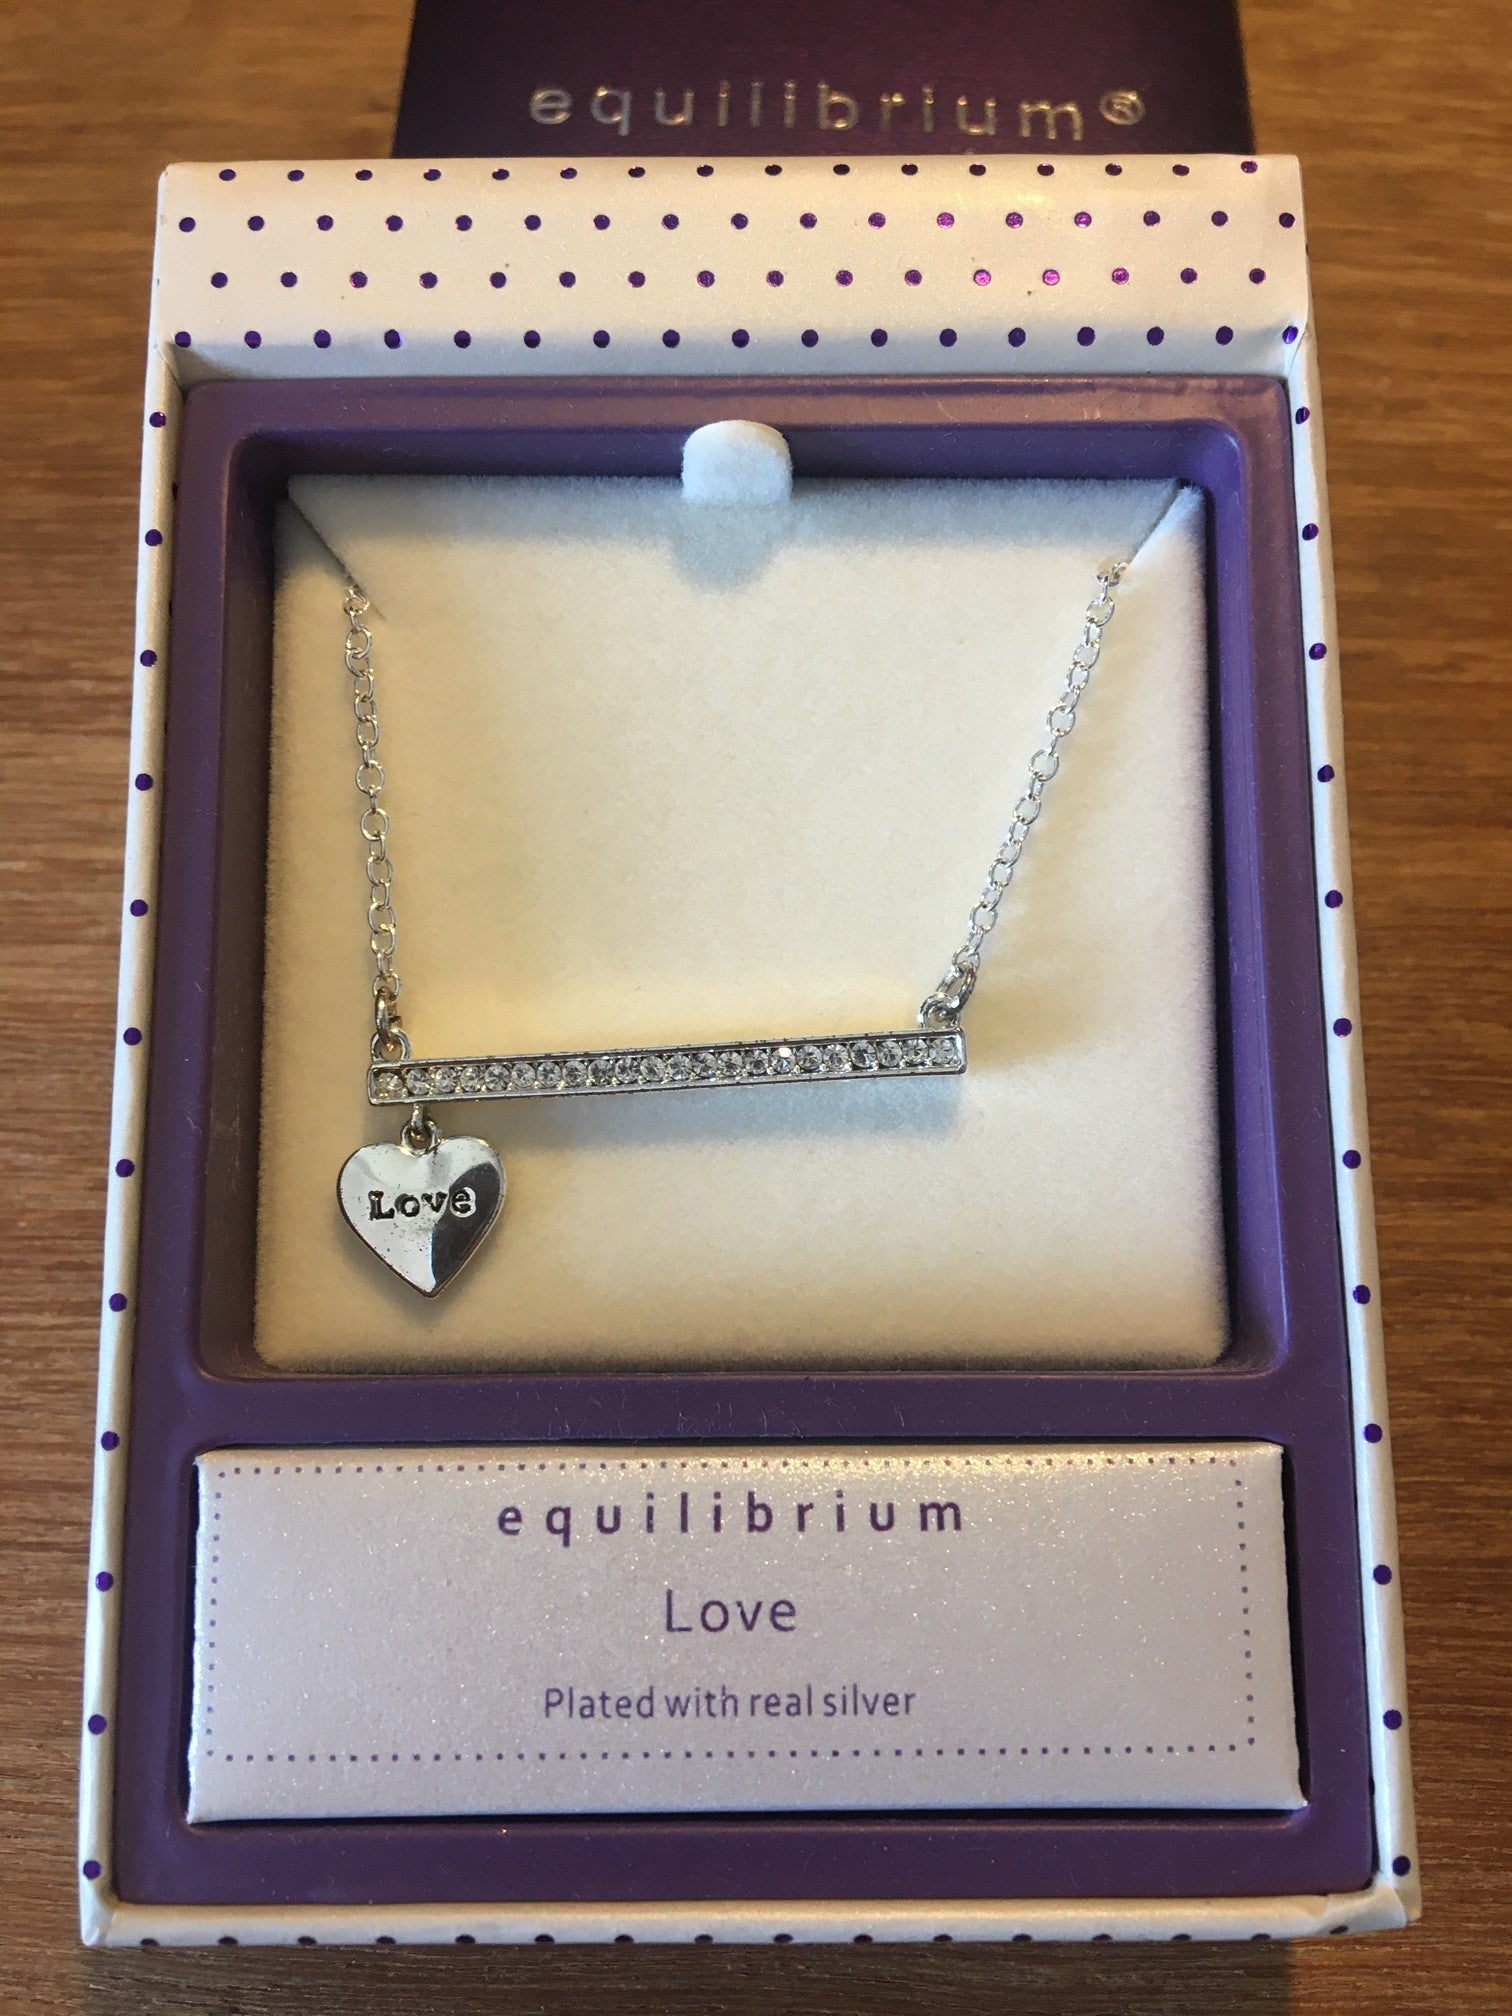 Equilibrium Silver Plated Sparkle Bar Charm Necklace – Love - ClothesLabels.UK